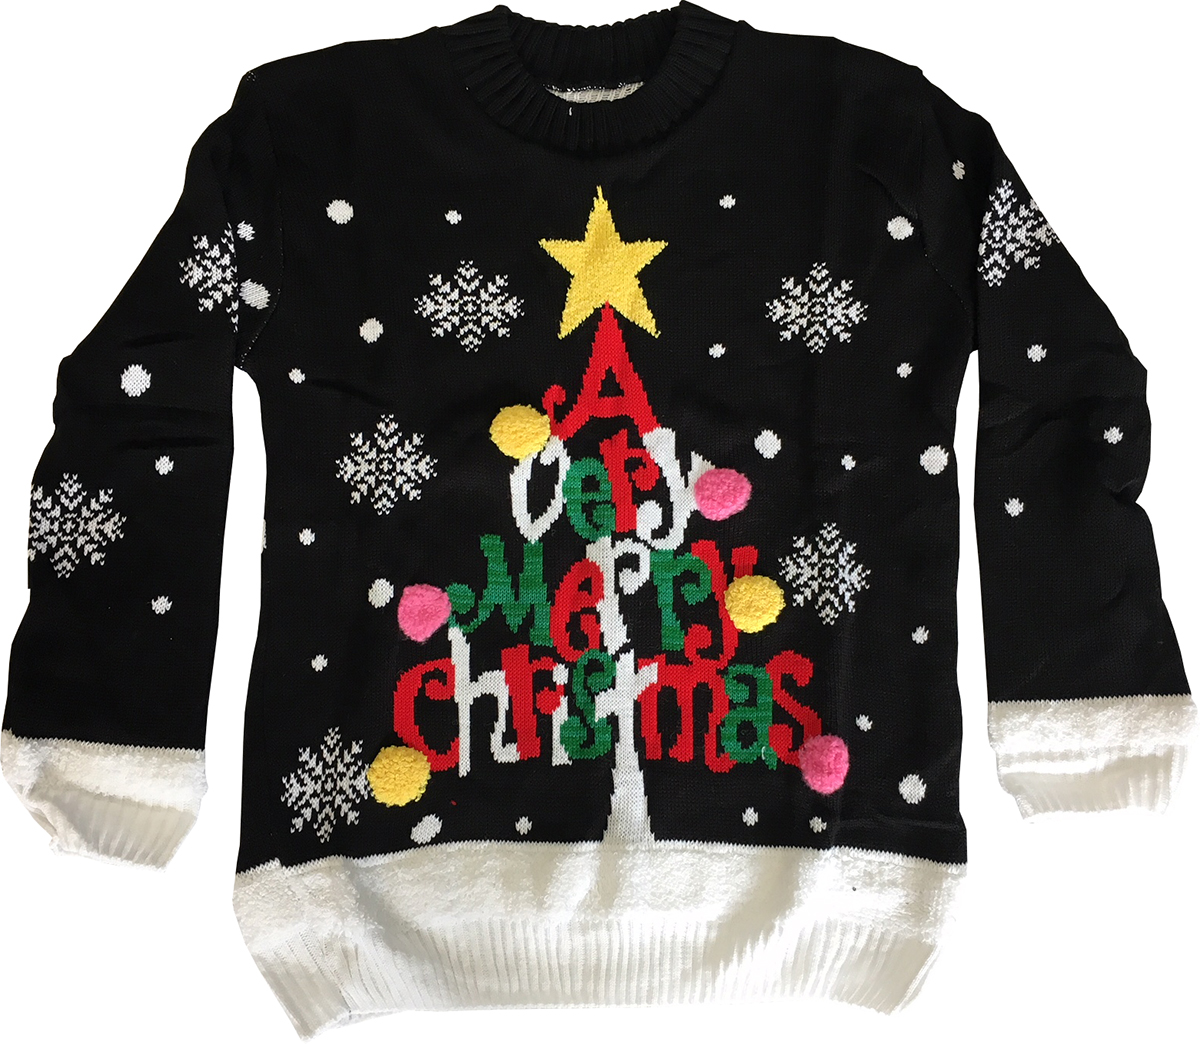 Details About Ladies Christmas Jumper Womens New 2019 Novelty Xmas Knitted Retro Sweater New